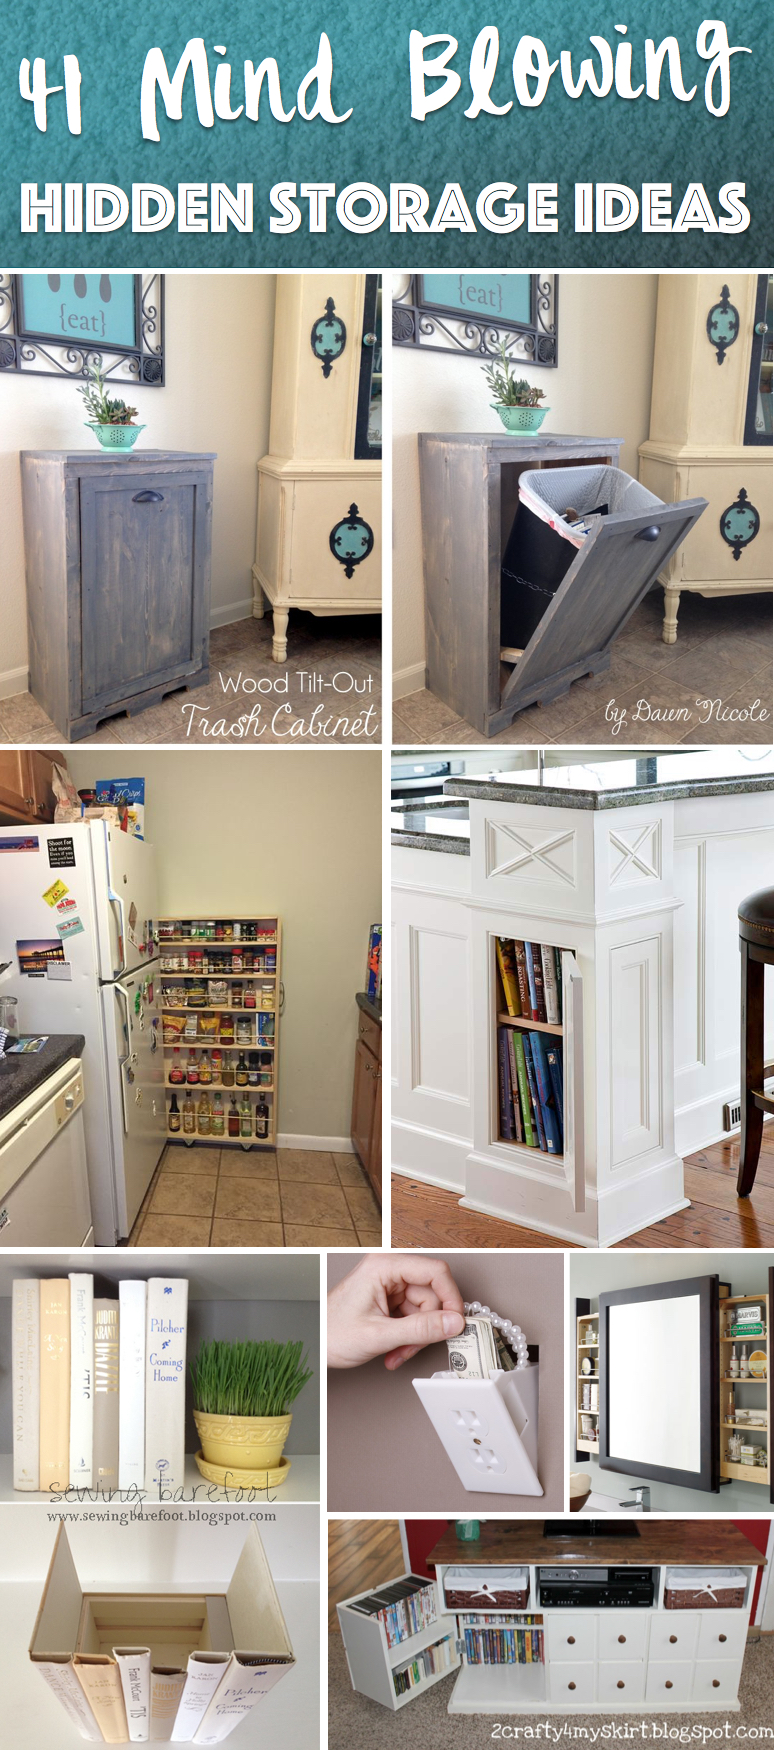 12 Mind Blowing Hidden Storage Ideas Making a Clever Use of Your